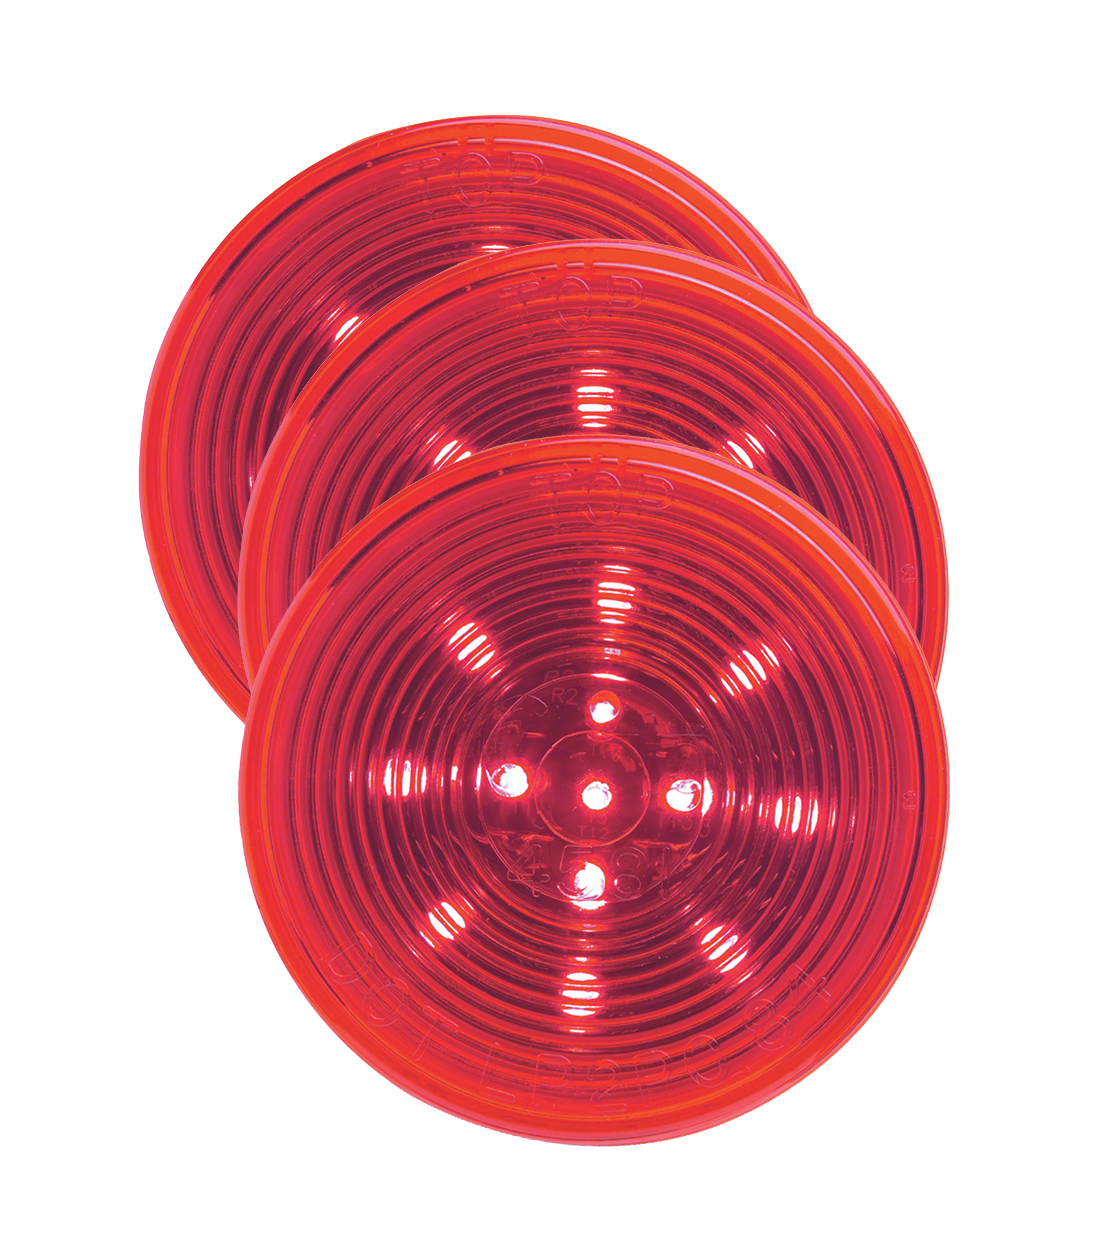 Grote Industries - G1032-3 – Hi Count® 2 1/2″ LED Clearance Marker Light, Optic, Red, Bulk Pack